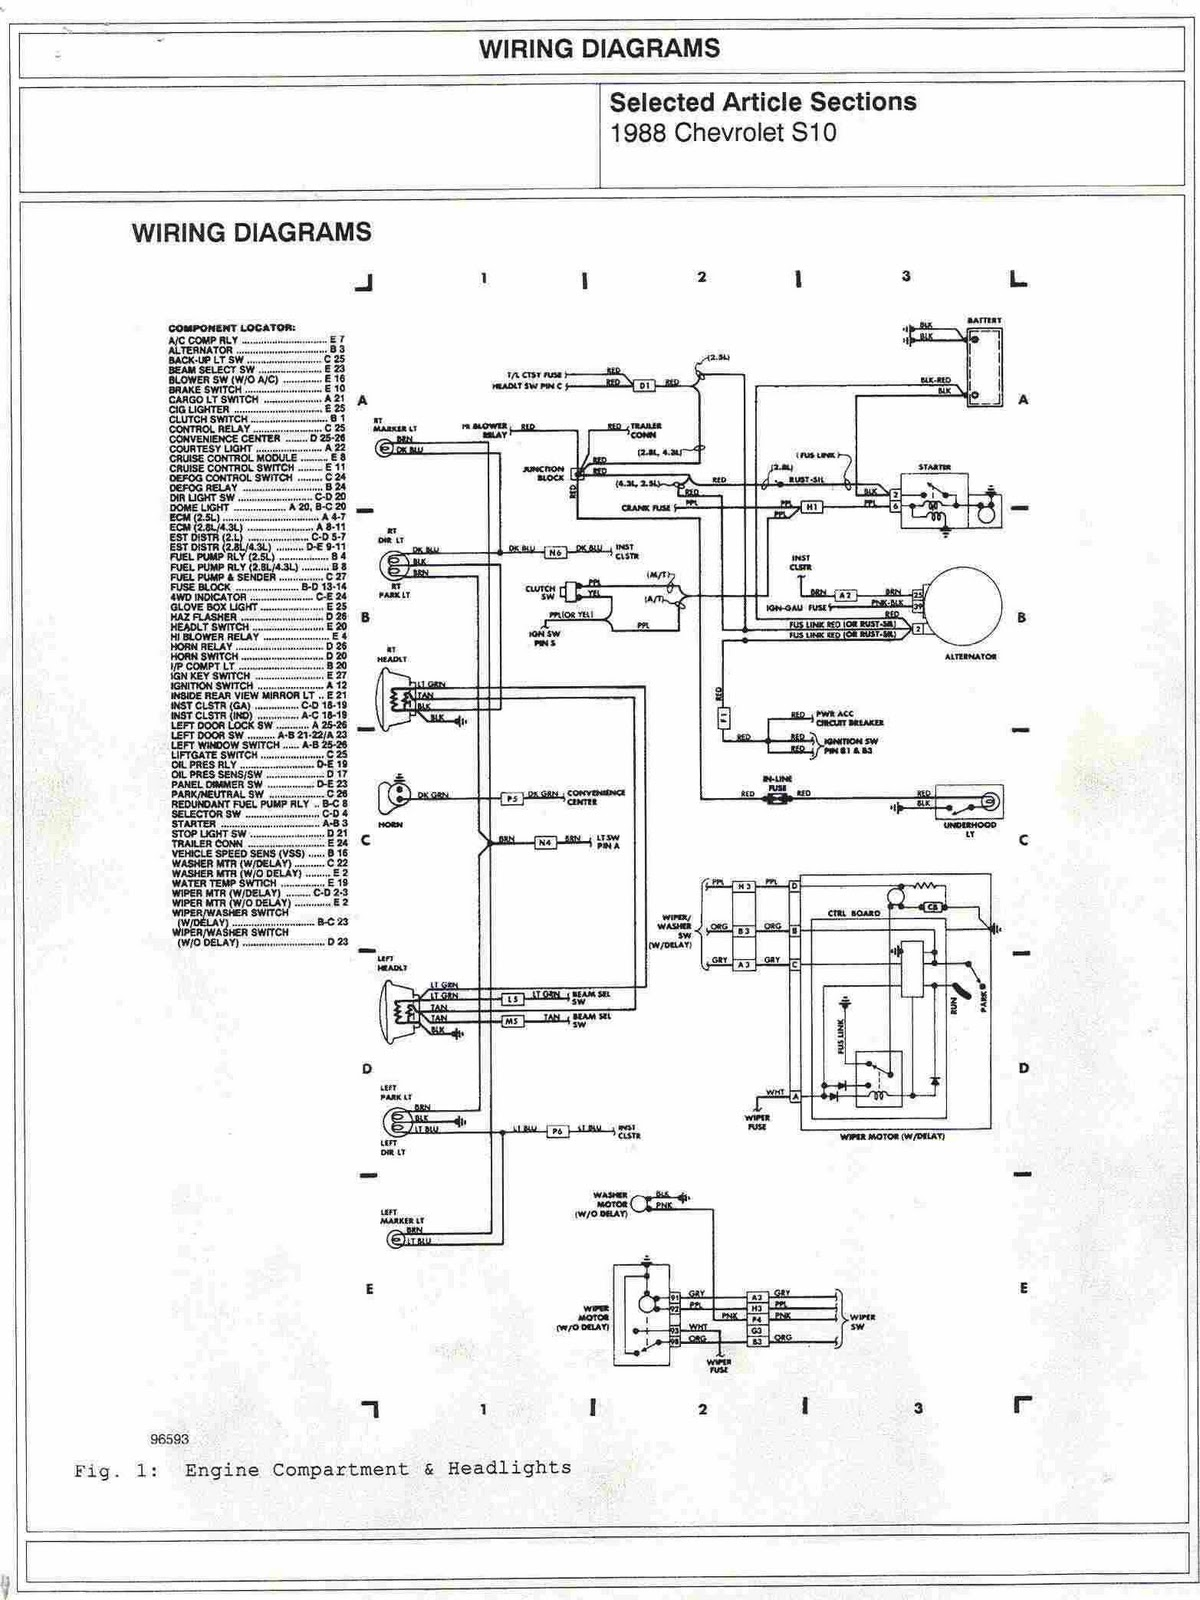 1988+Chevrolet+S10+Engine+Compartment+and+Headlights+Wiring+Diagrams 95 s10 wiring diagram 95 tahoe wiring diagram \u2022 wiring diagrams chevy s10 wiring diagram at readyjetset.co